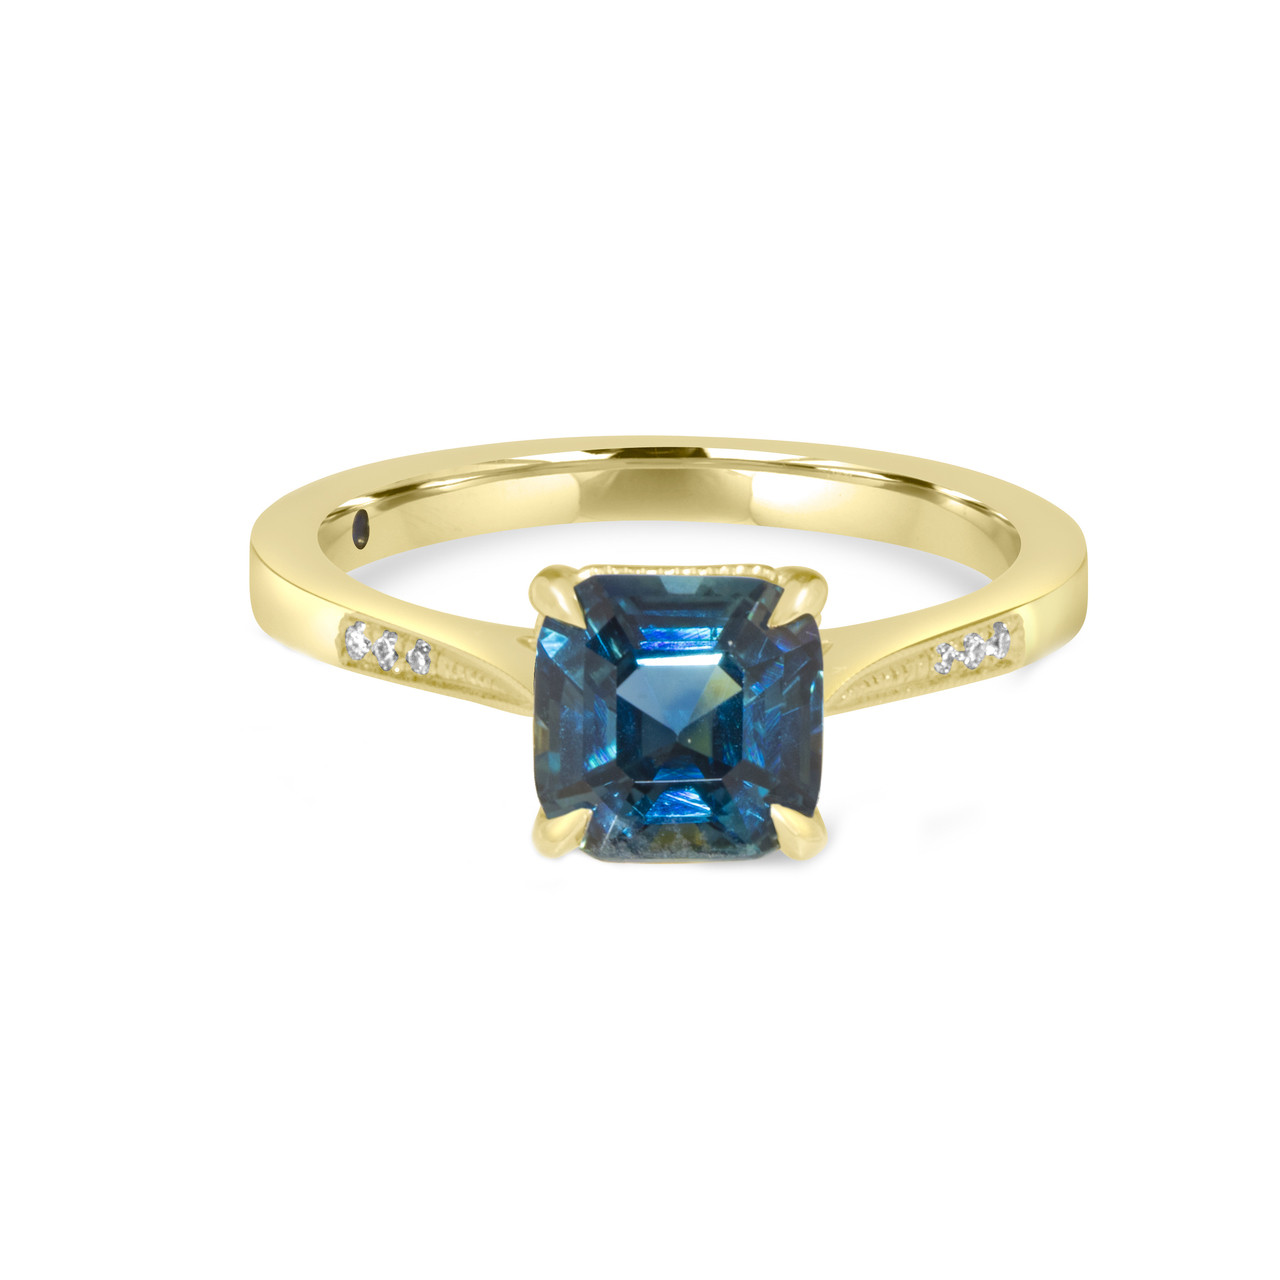 Sapphire Wedding Rings.Cushion Teal Sapphire Ring In Yellow Gold